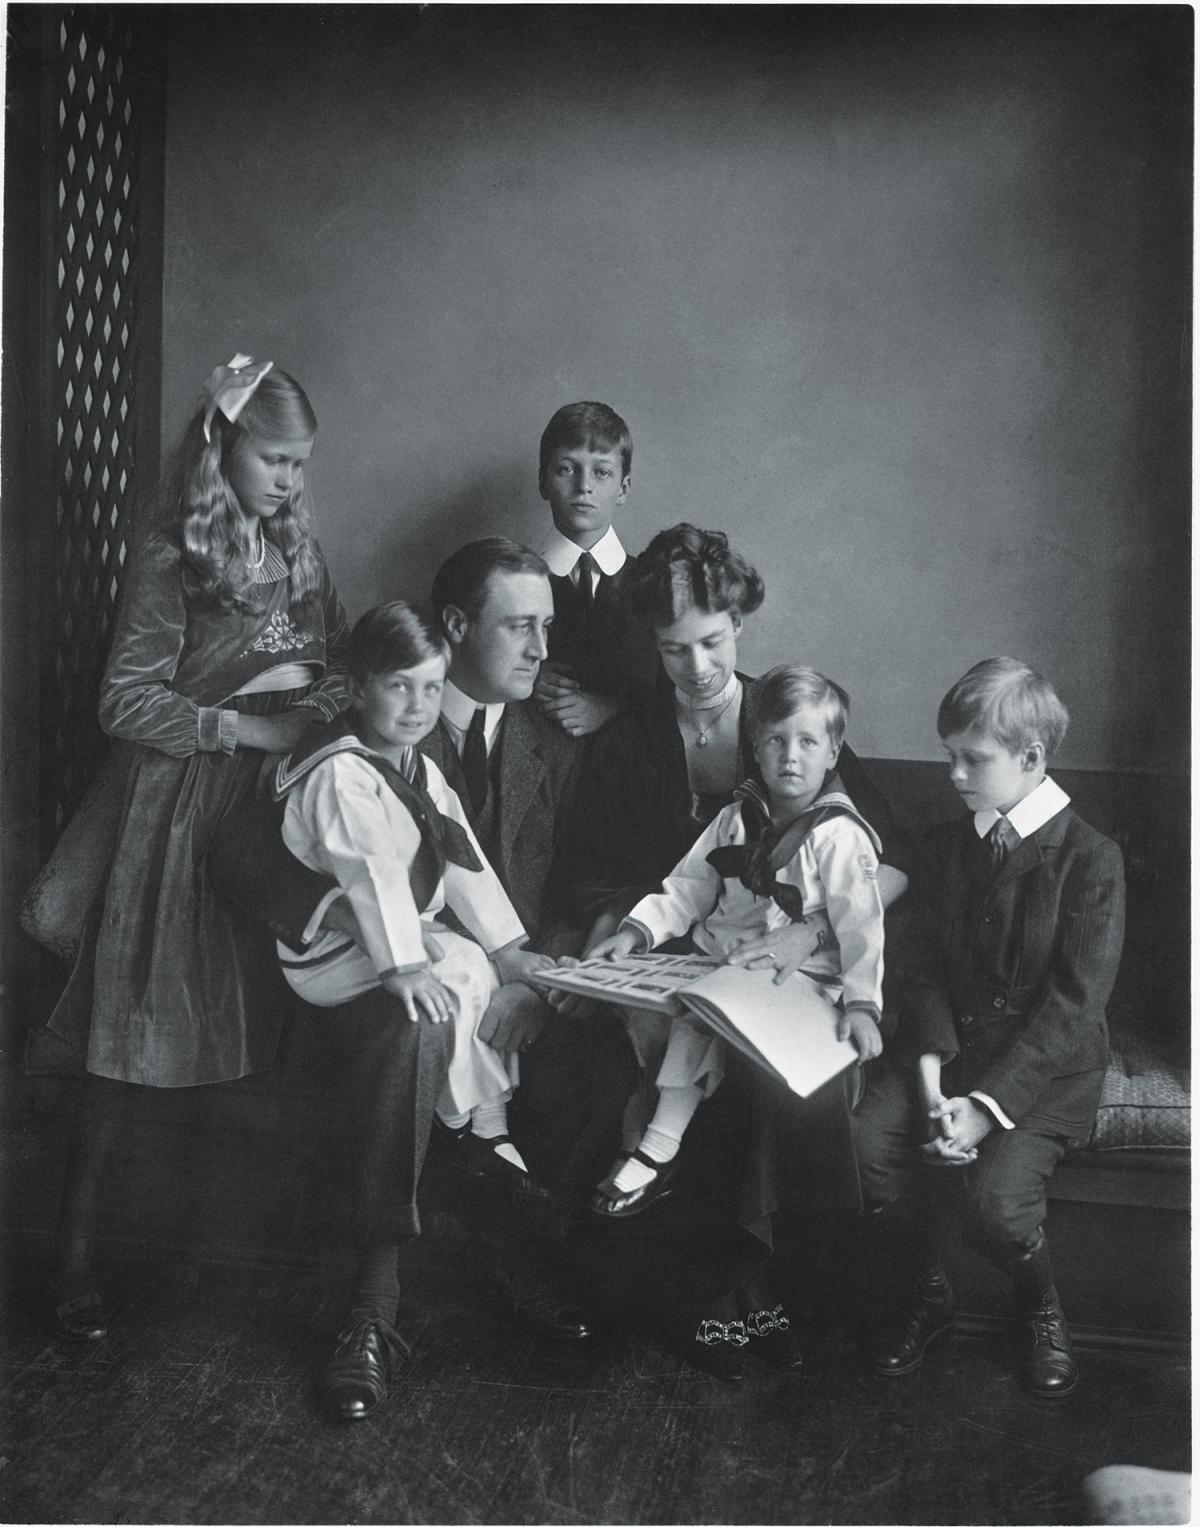 Family portrait of FDR, Eleanor, and their five children